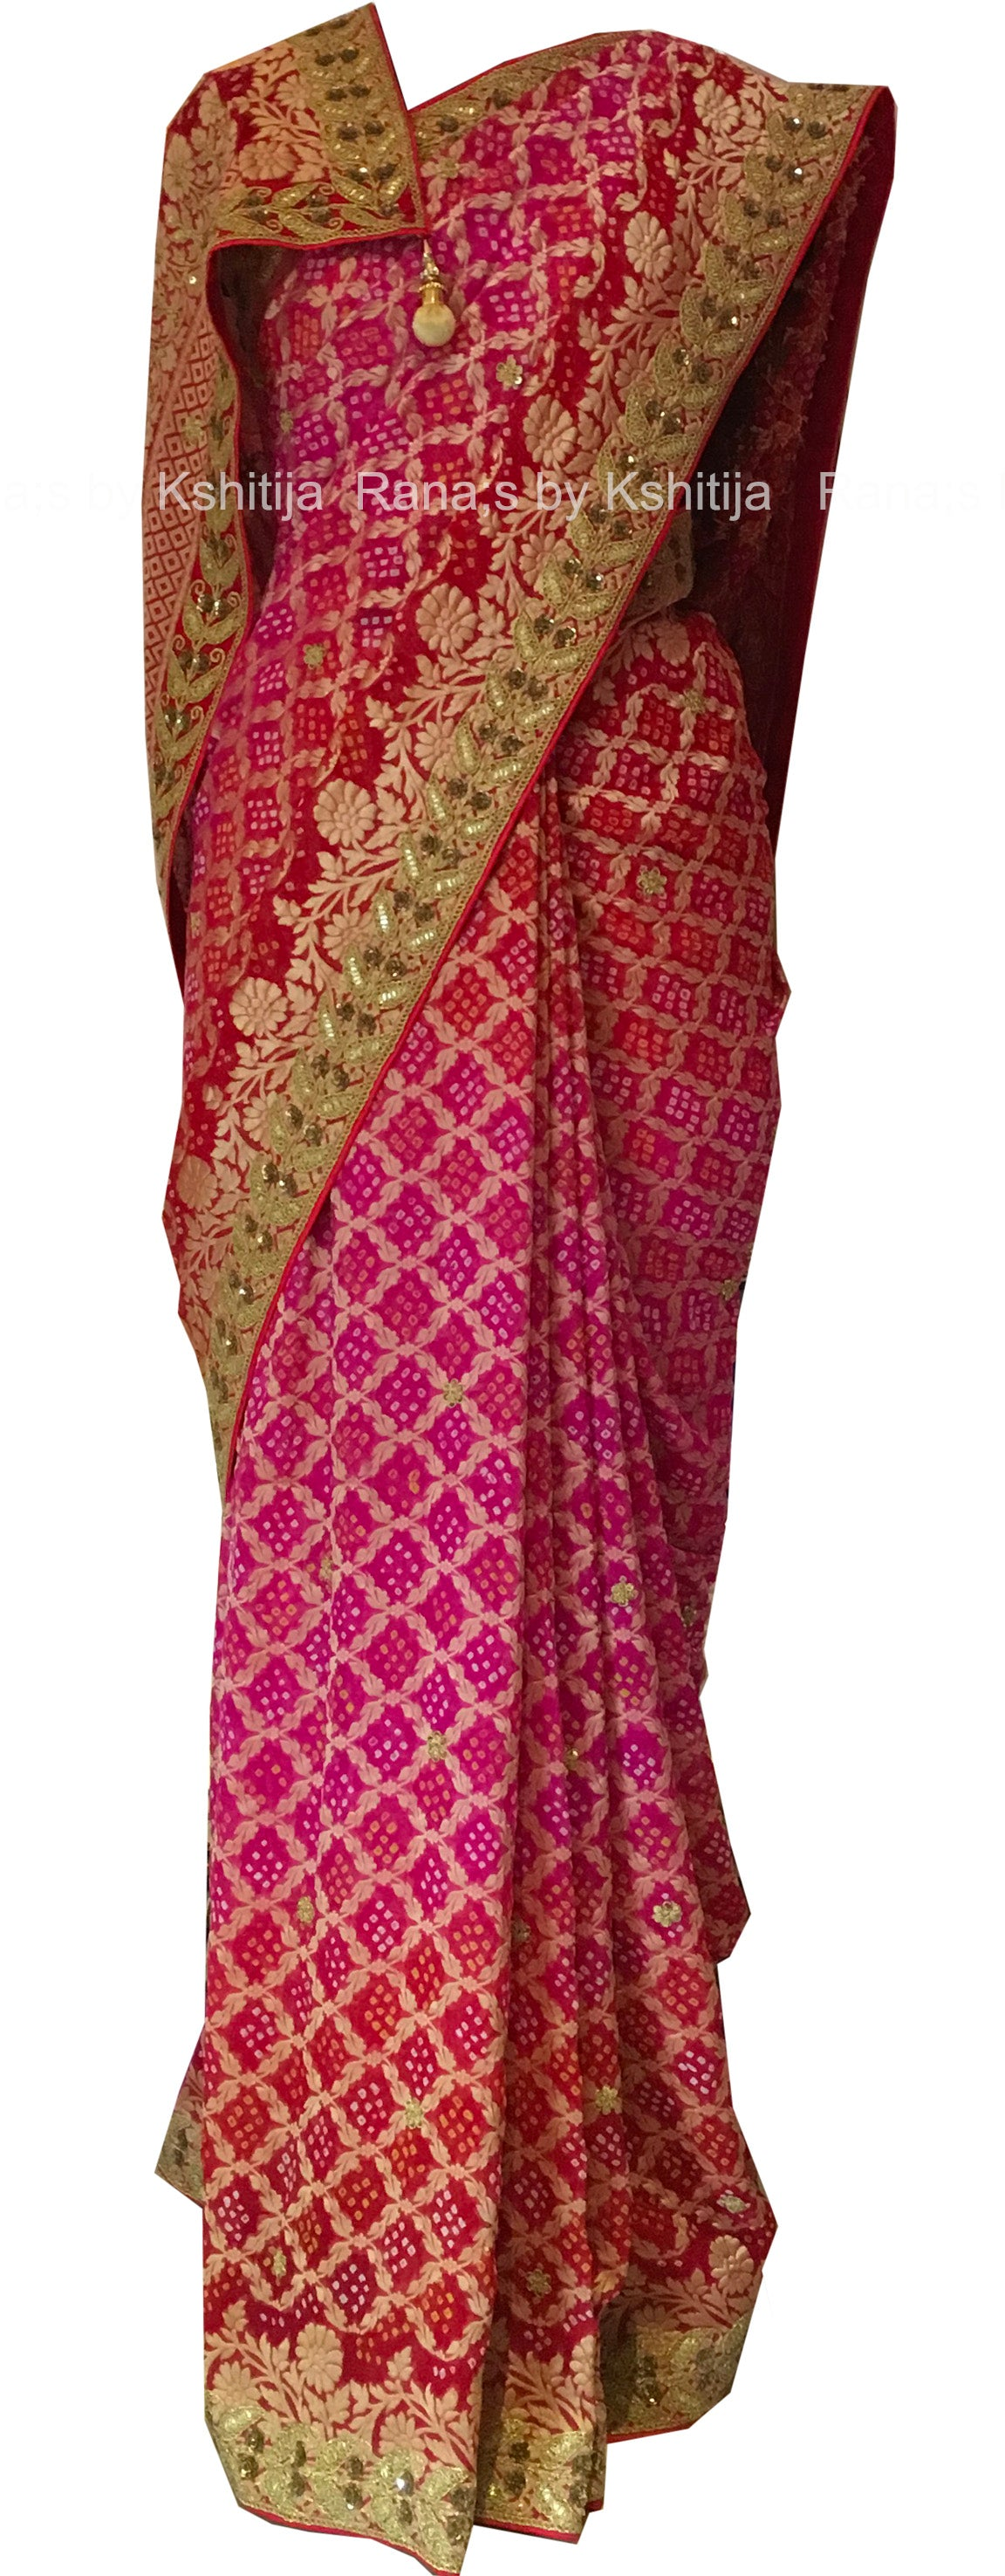 Banarsi Bandhani Saree with Marodi Work